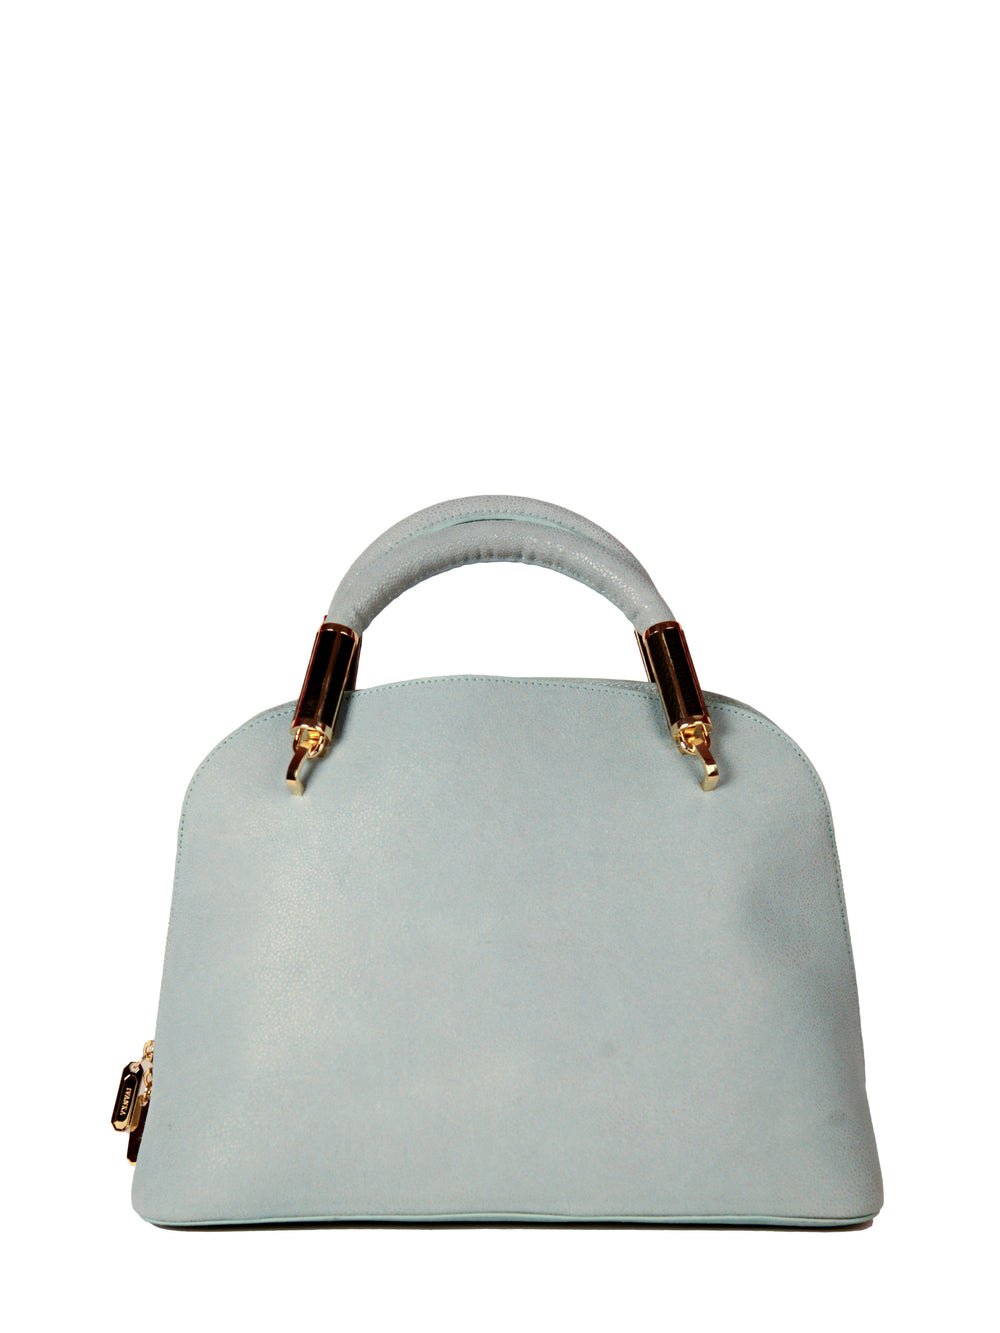 Ava Dome Satchel, IVANKA - elilhaam.com